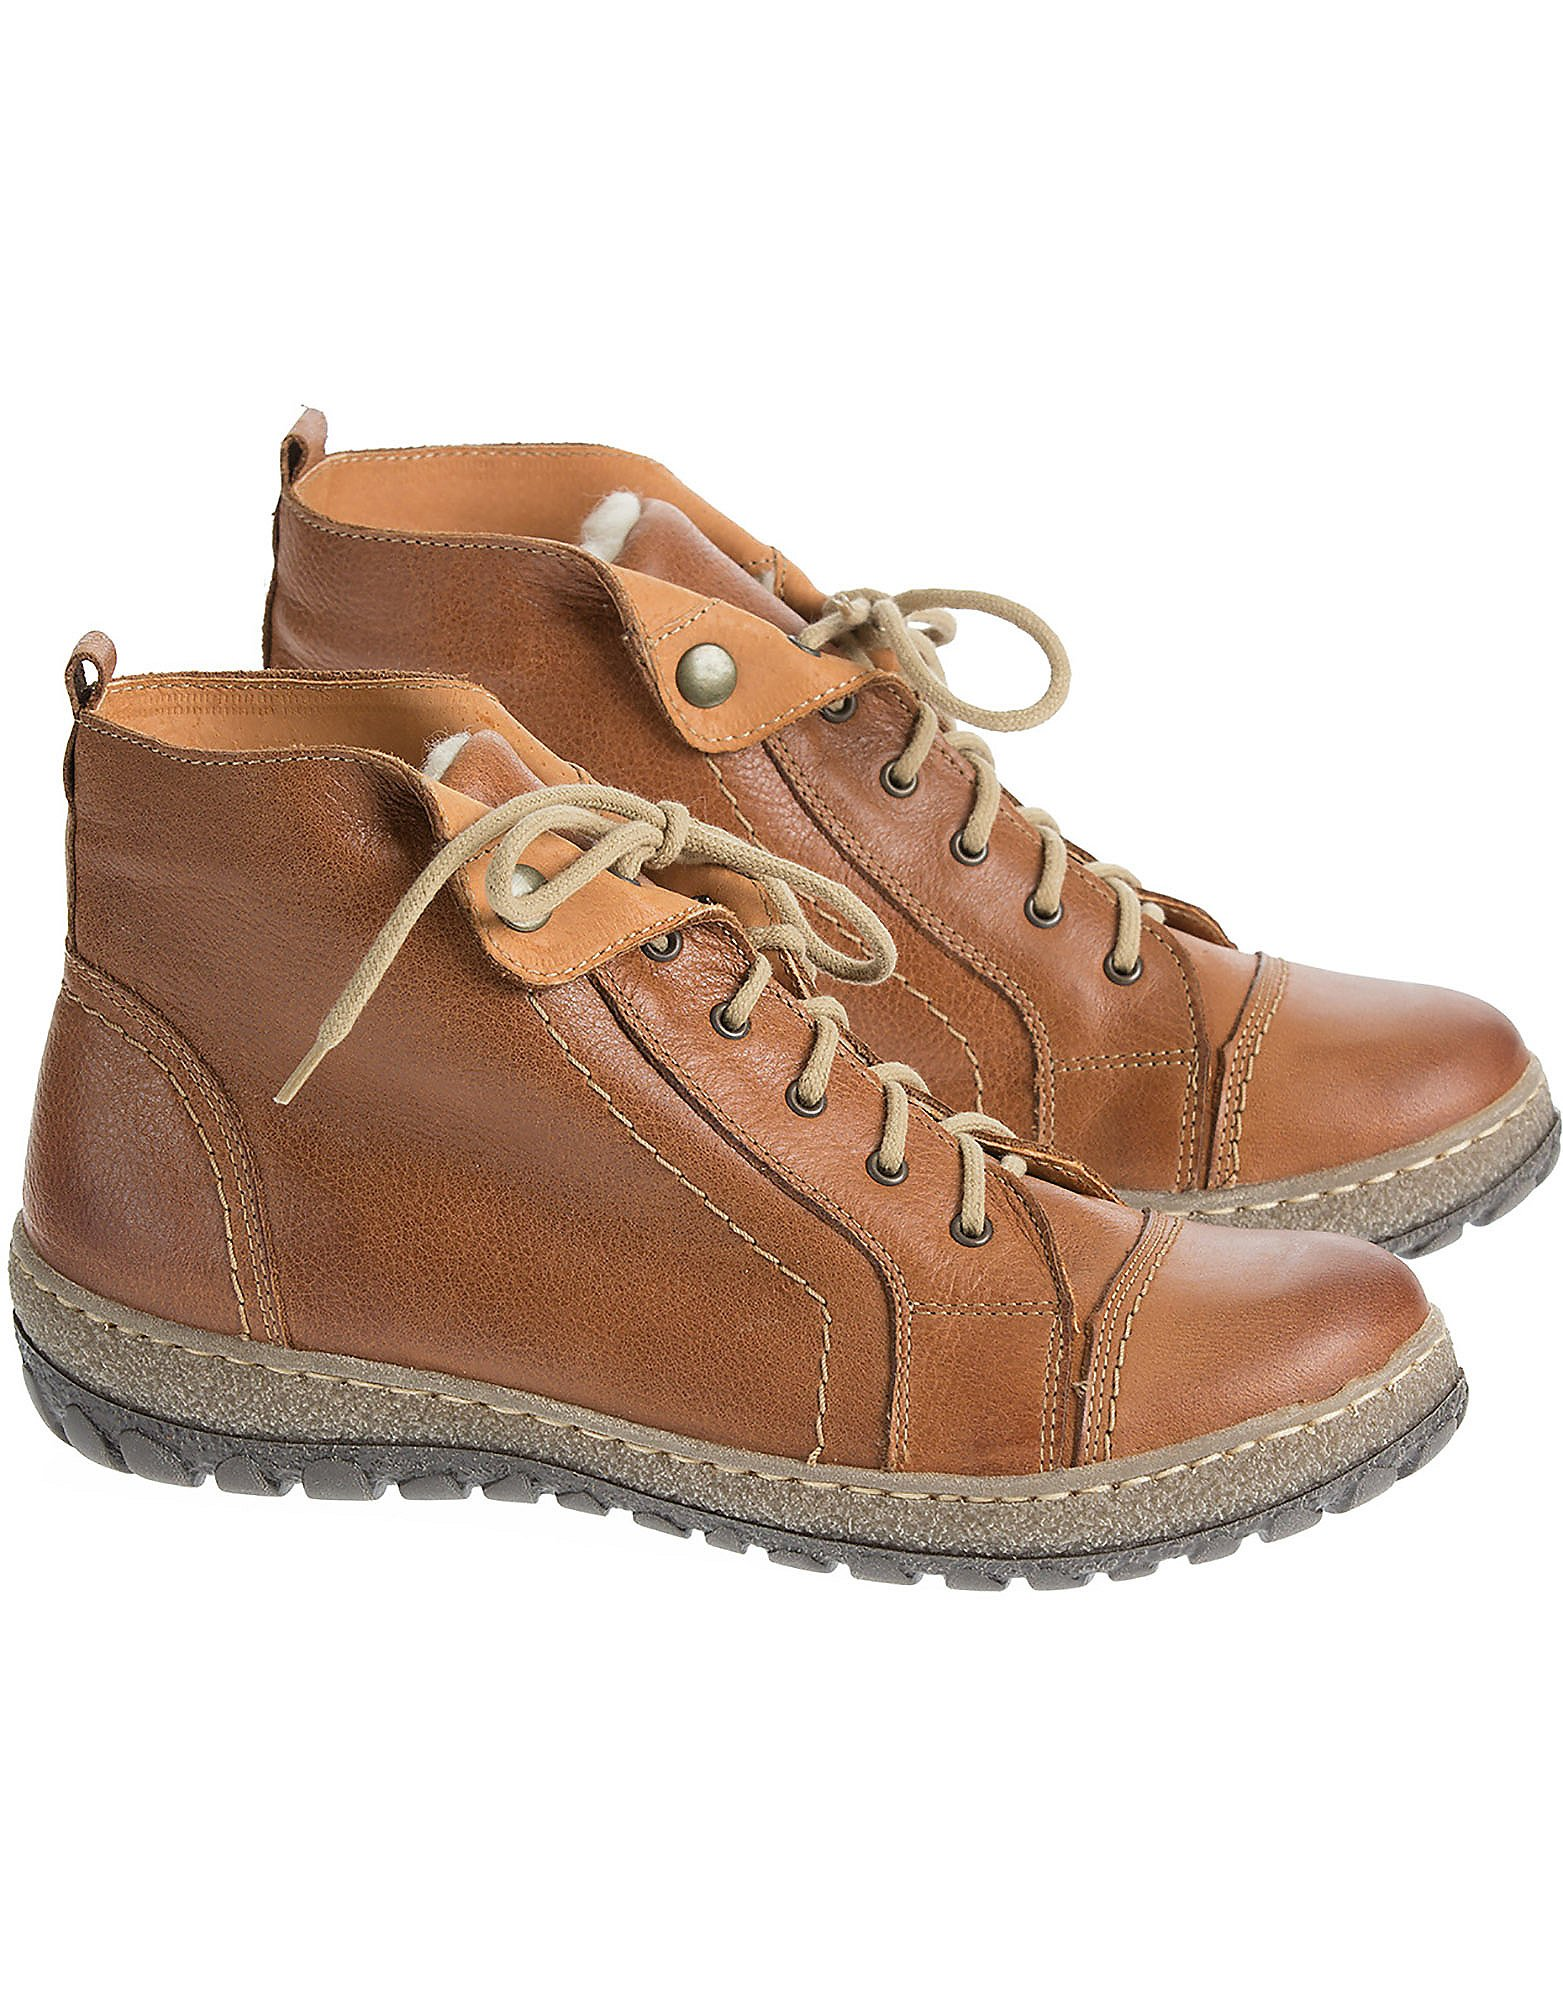 Women's Overland Tucker Wool-Lined Leather Ankle Boots, CAMEL, Size EU41 by Overland Sheepskin Co